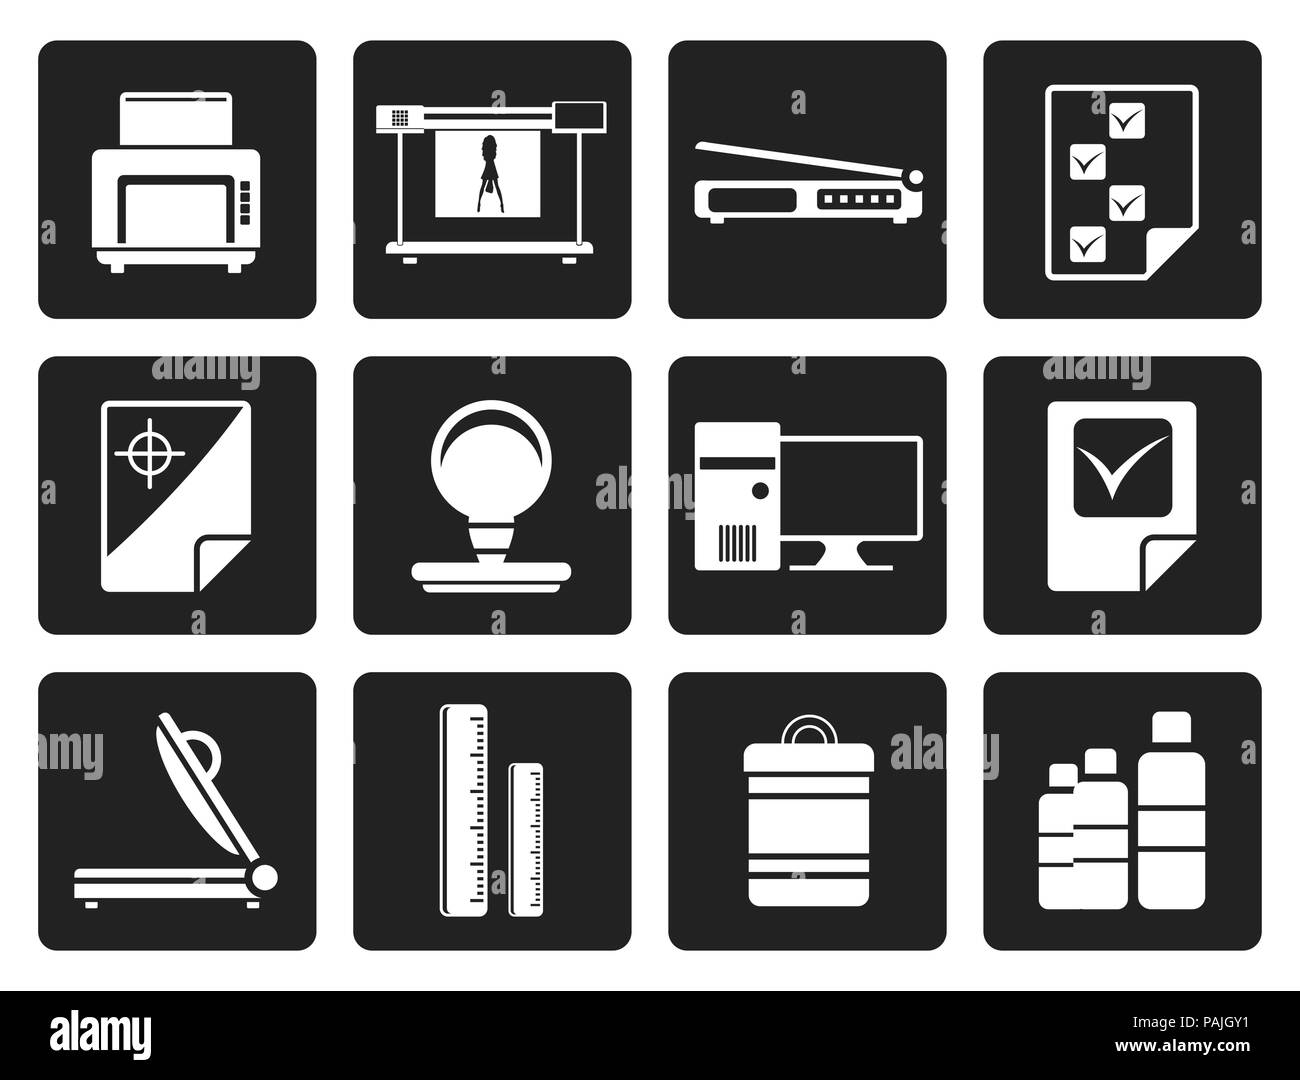 Black Print industry Icons - Vector icon set 2 - Stock Image